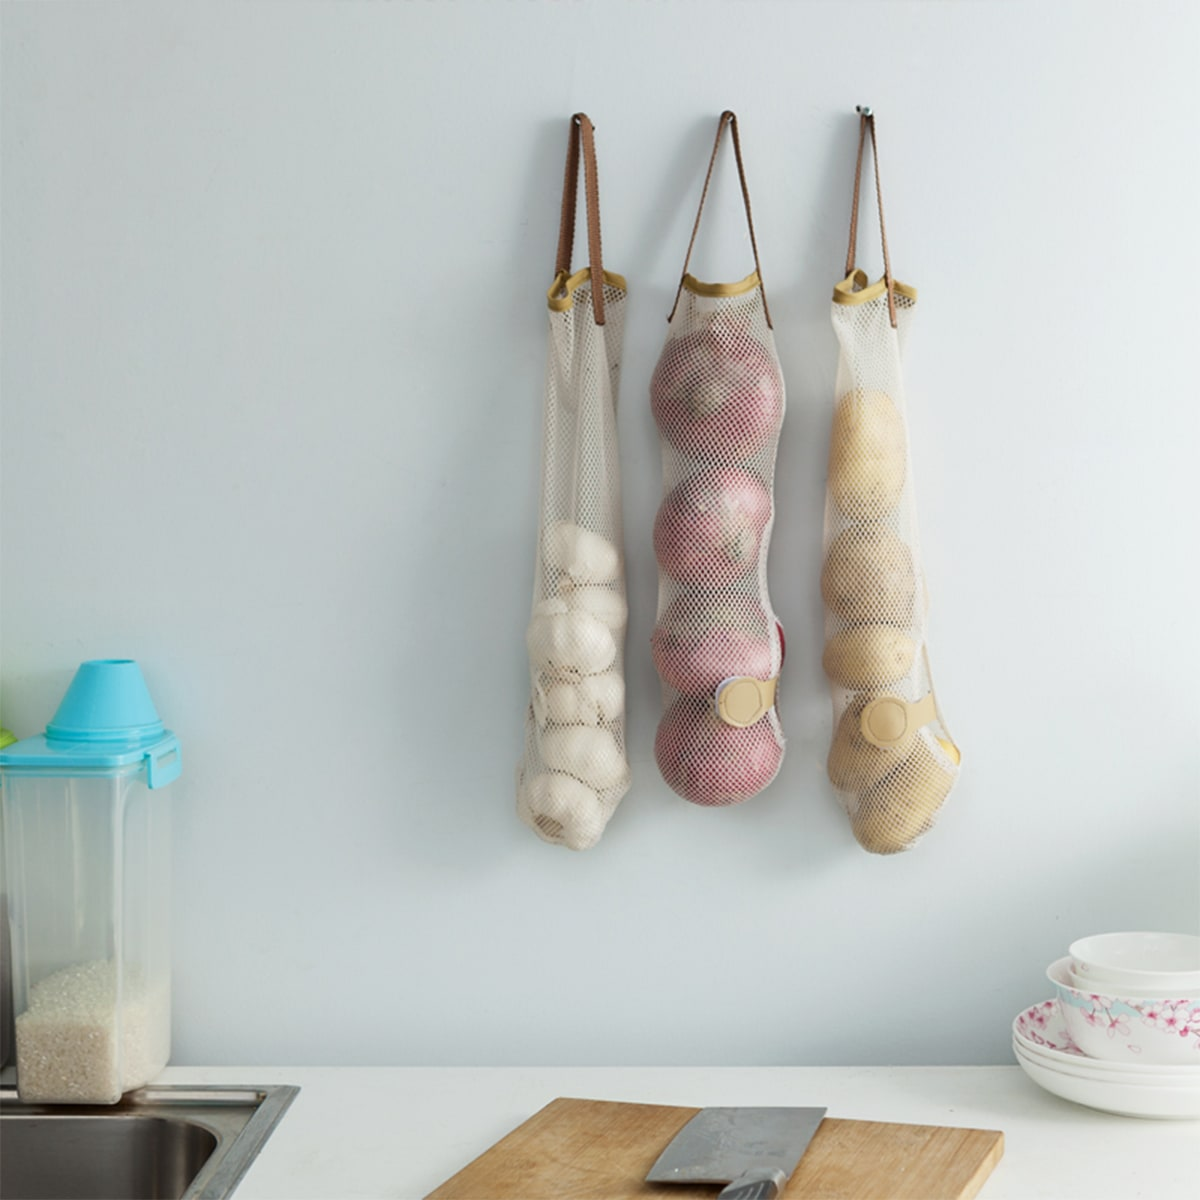 SHEIN / 1pc Kitchen Storage Net Bag